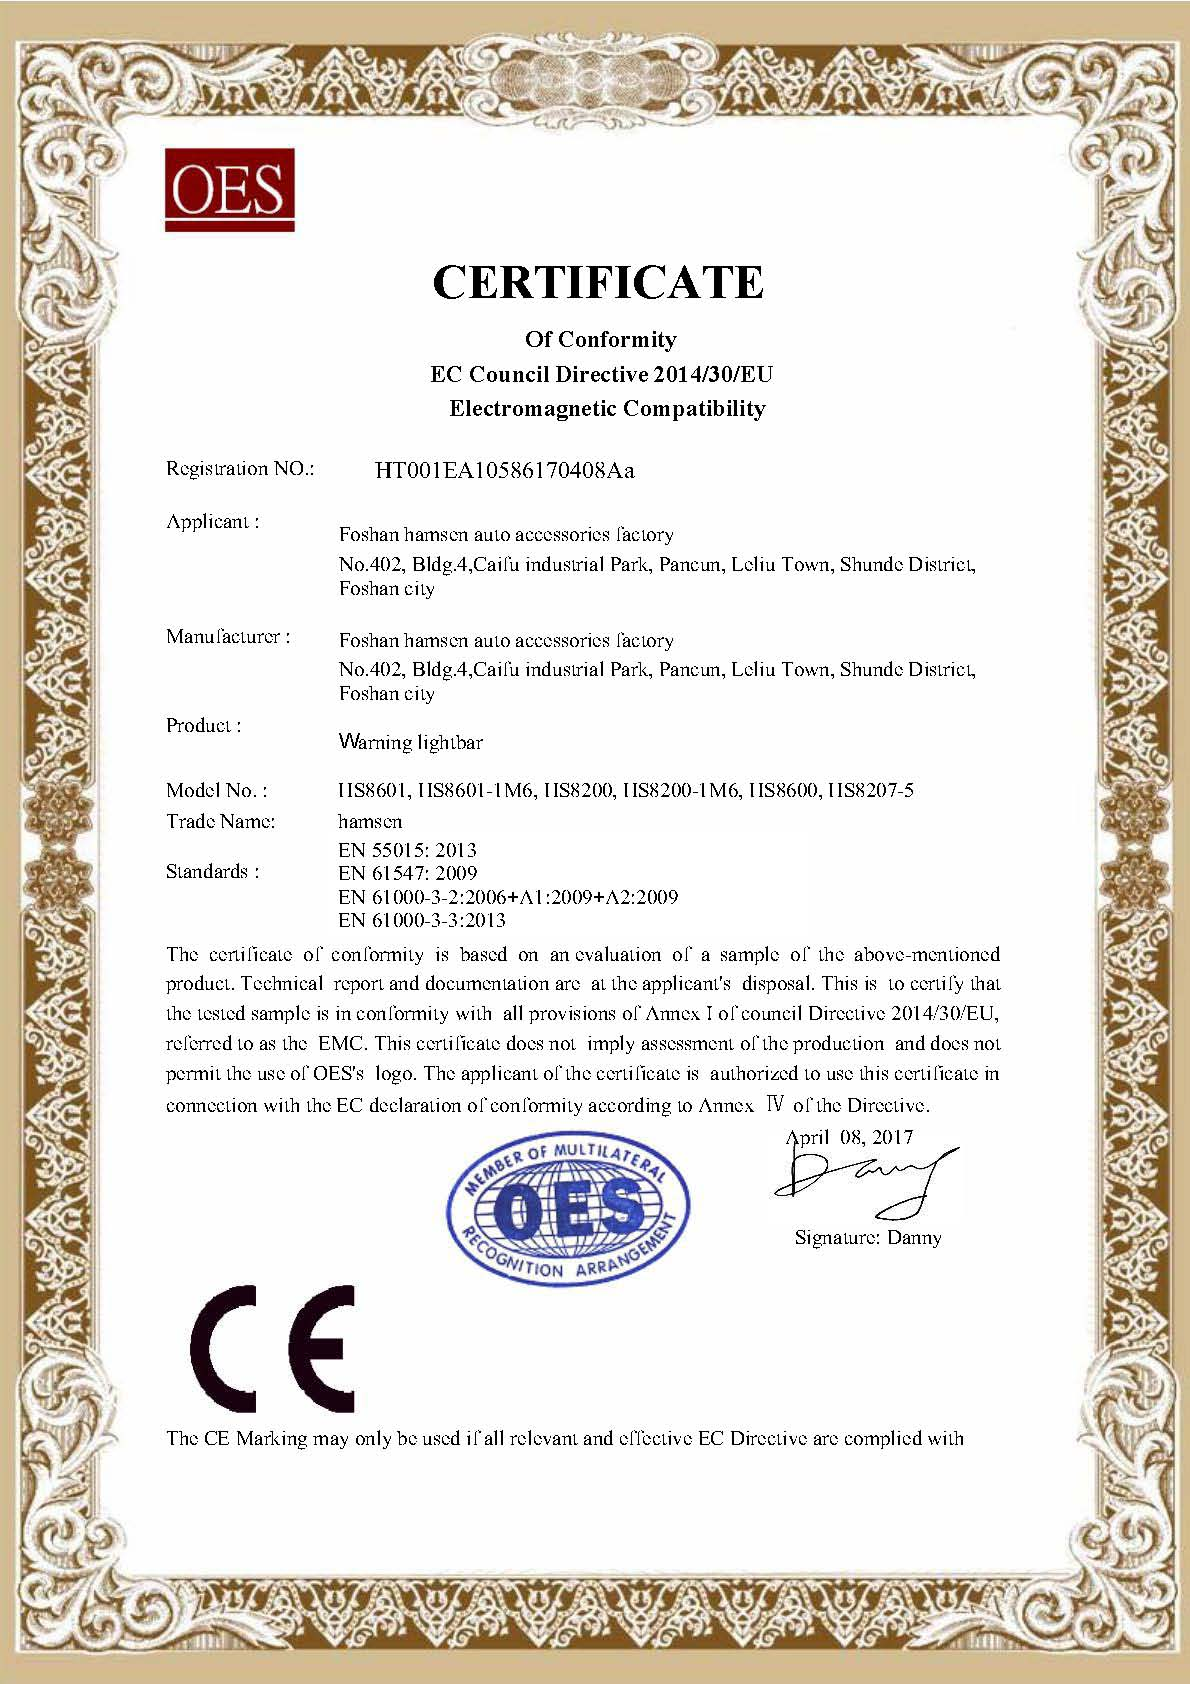 CE Certificate for Warning lightbar